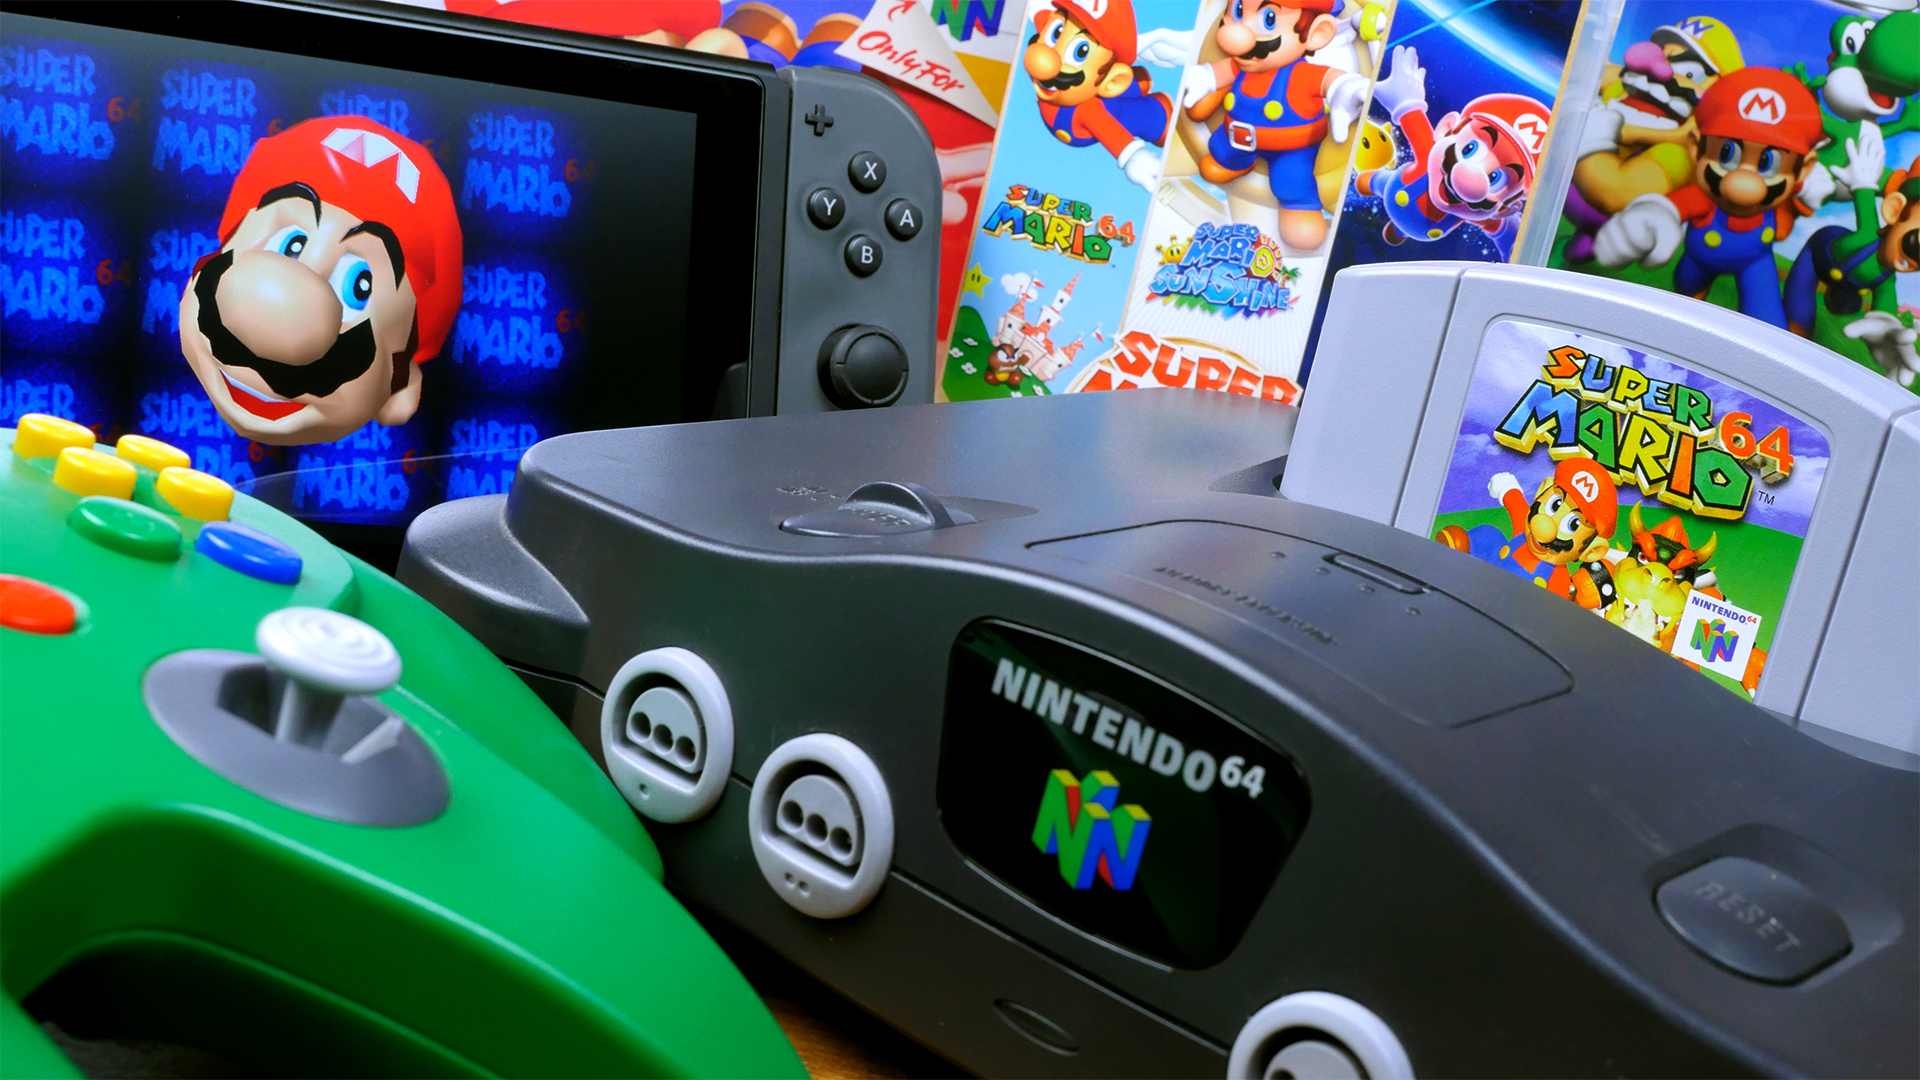 The Best Way to Play Super Mario 64